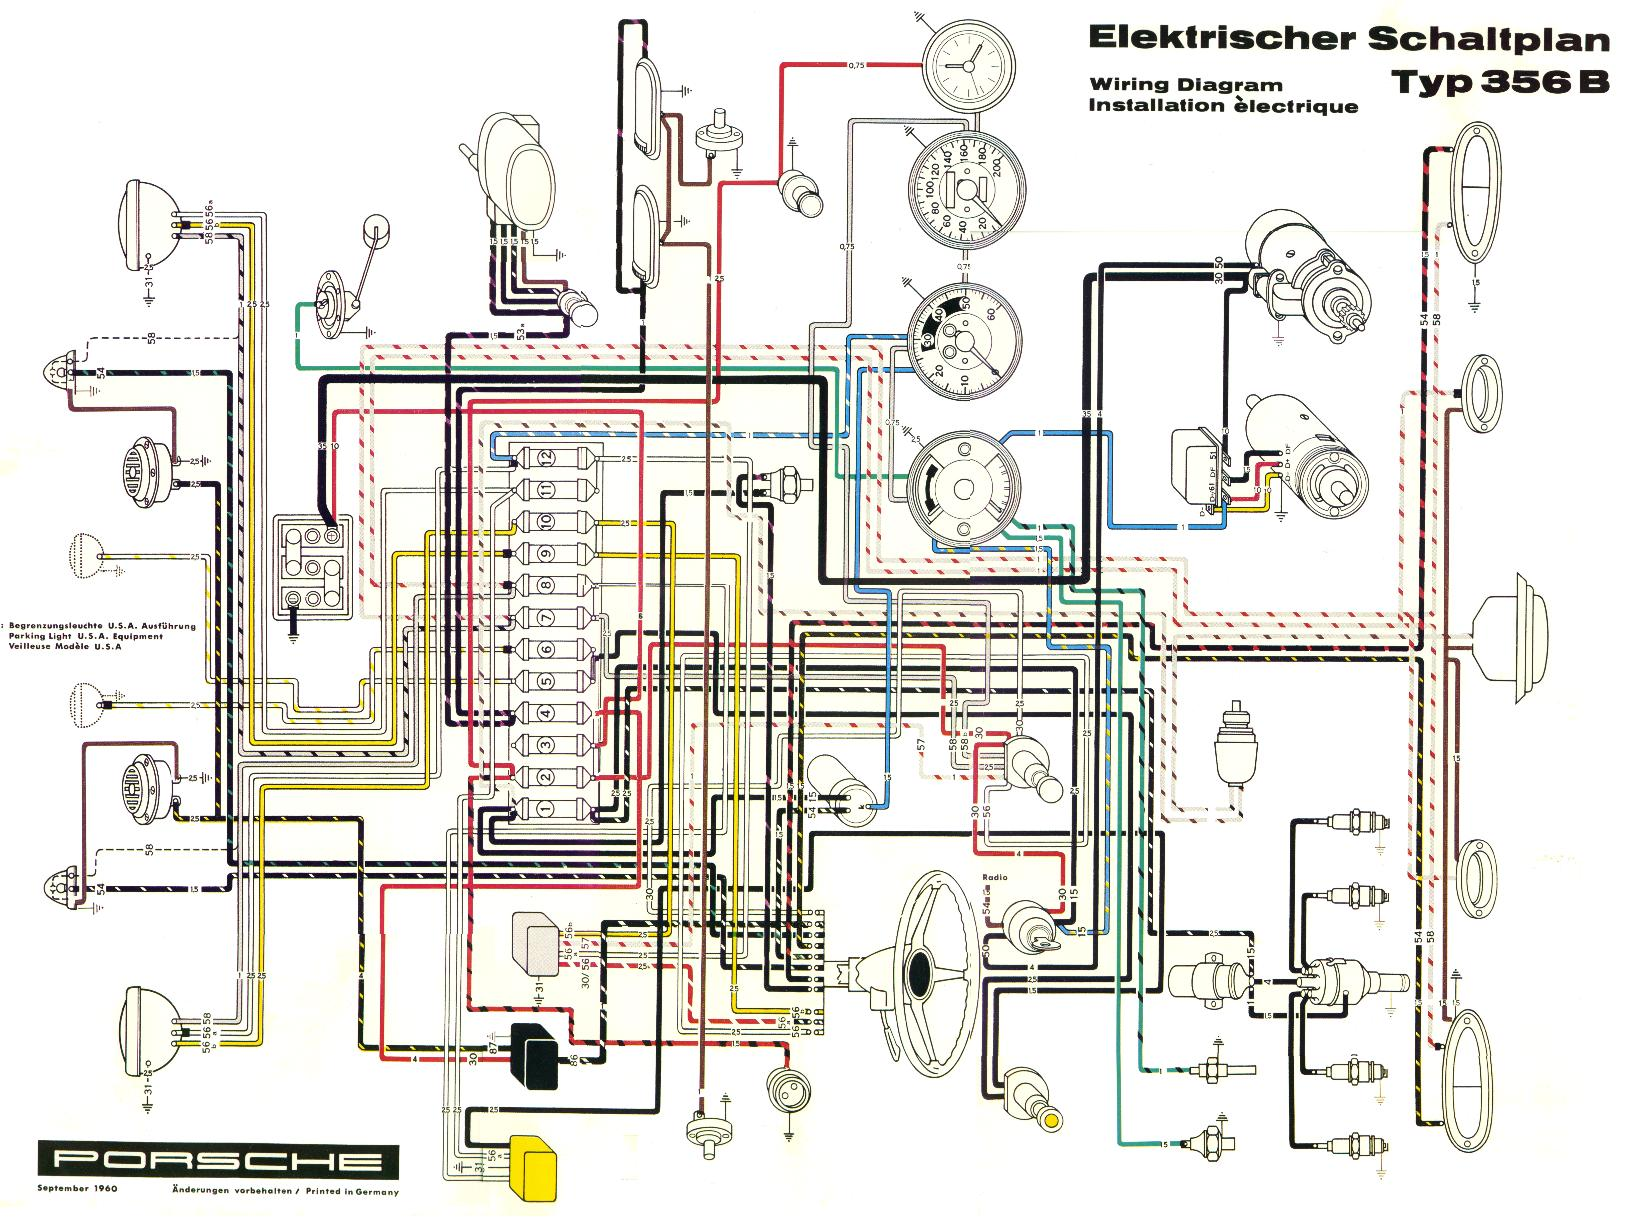 Bwiring on 1957 F100 Wiring Diagram